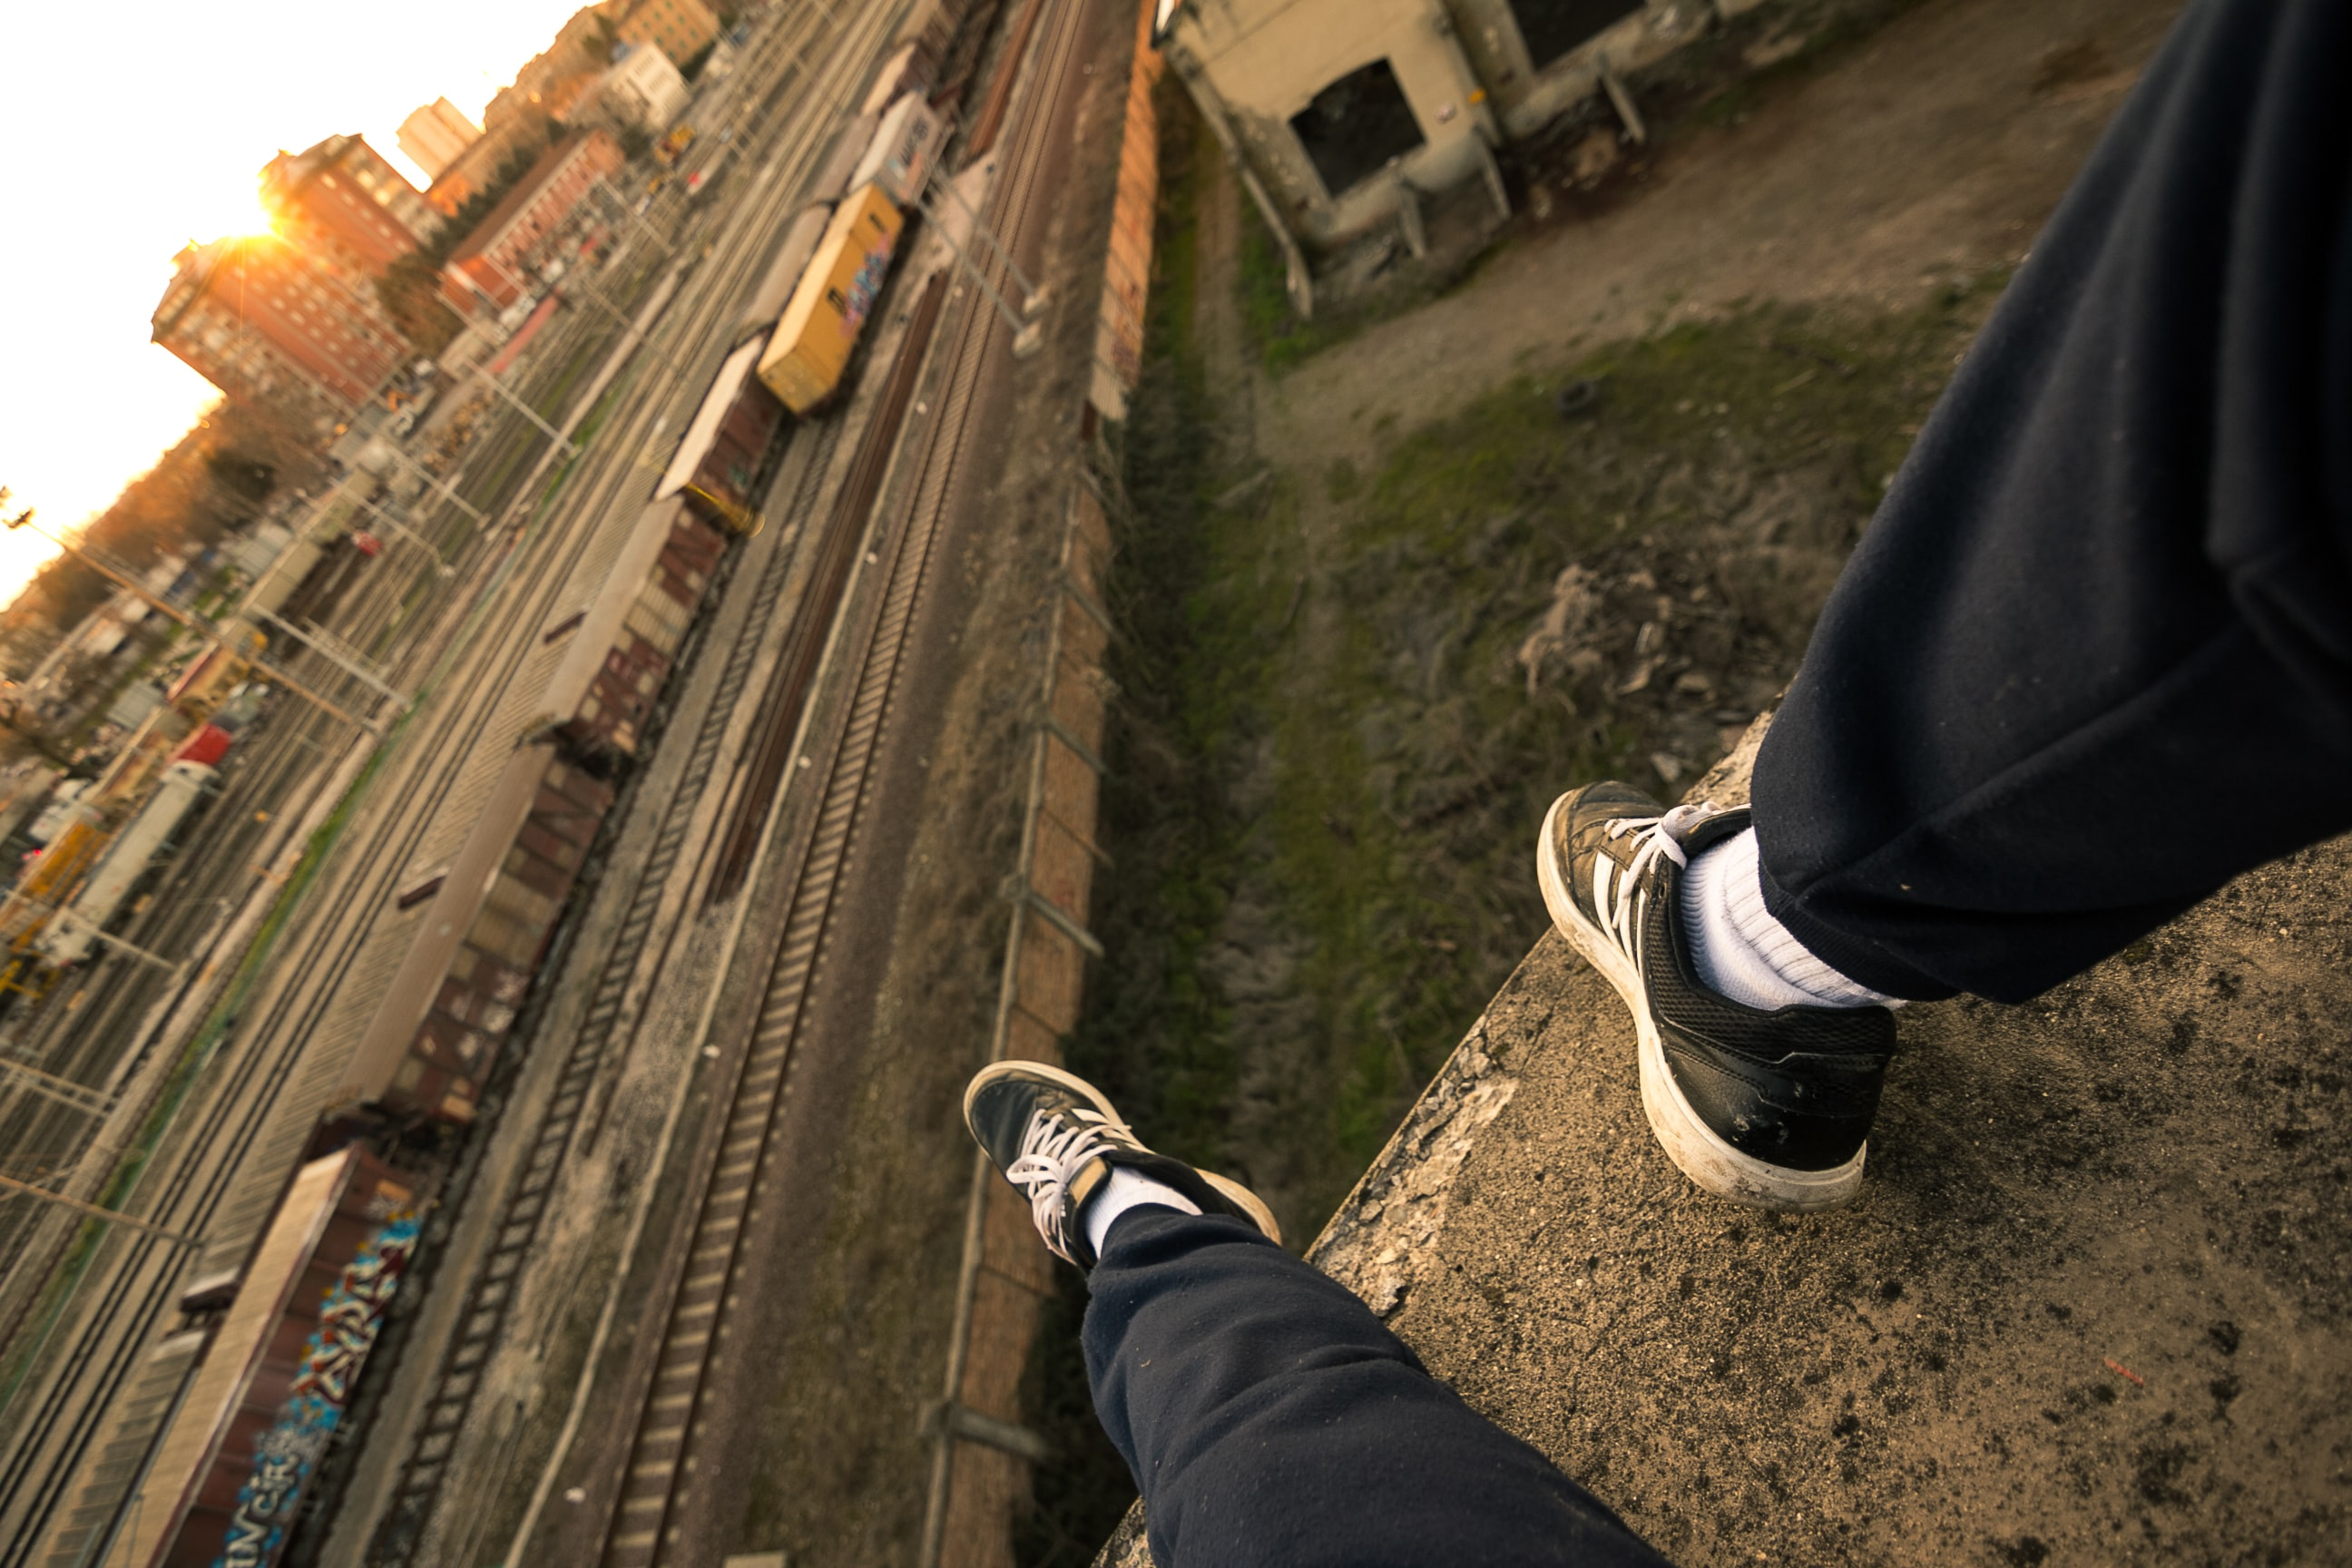 person sitting on rooftop